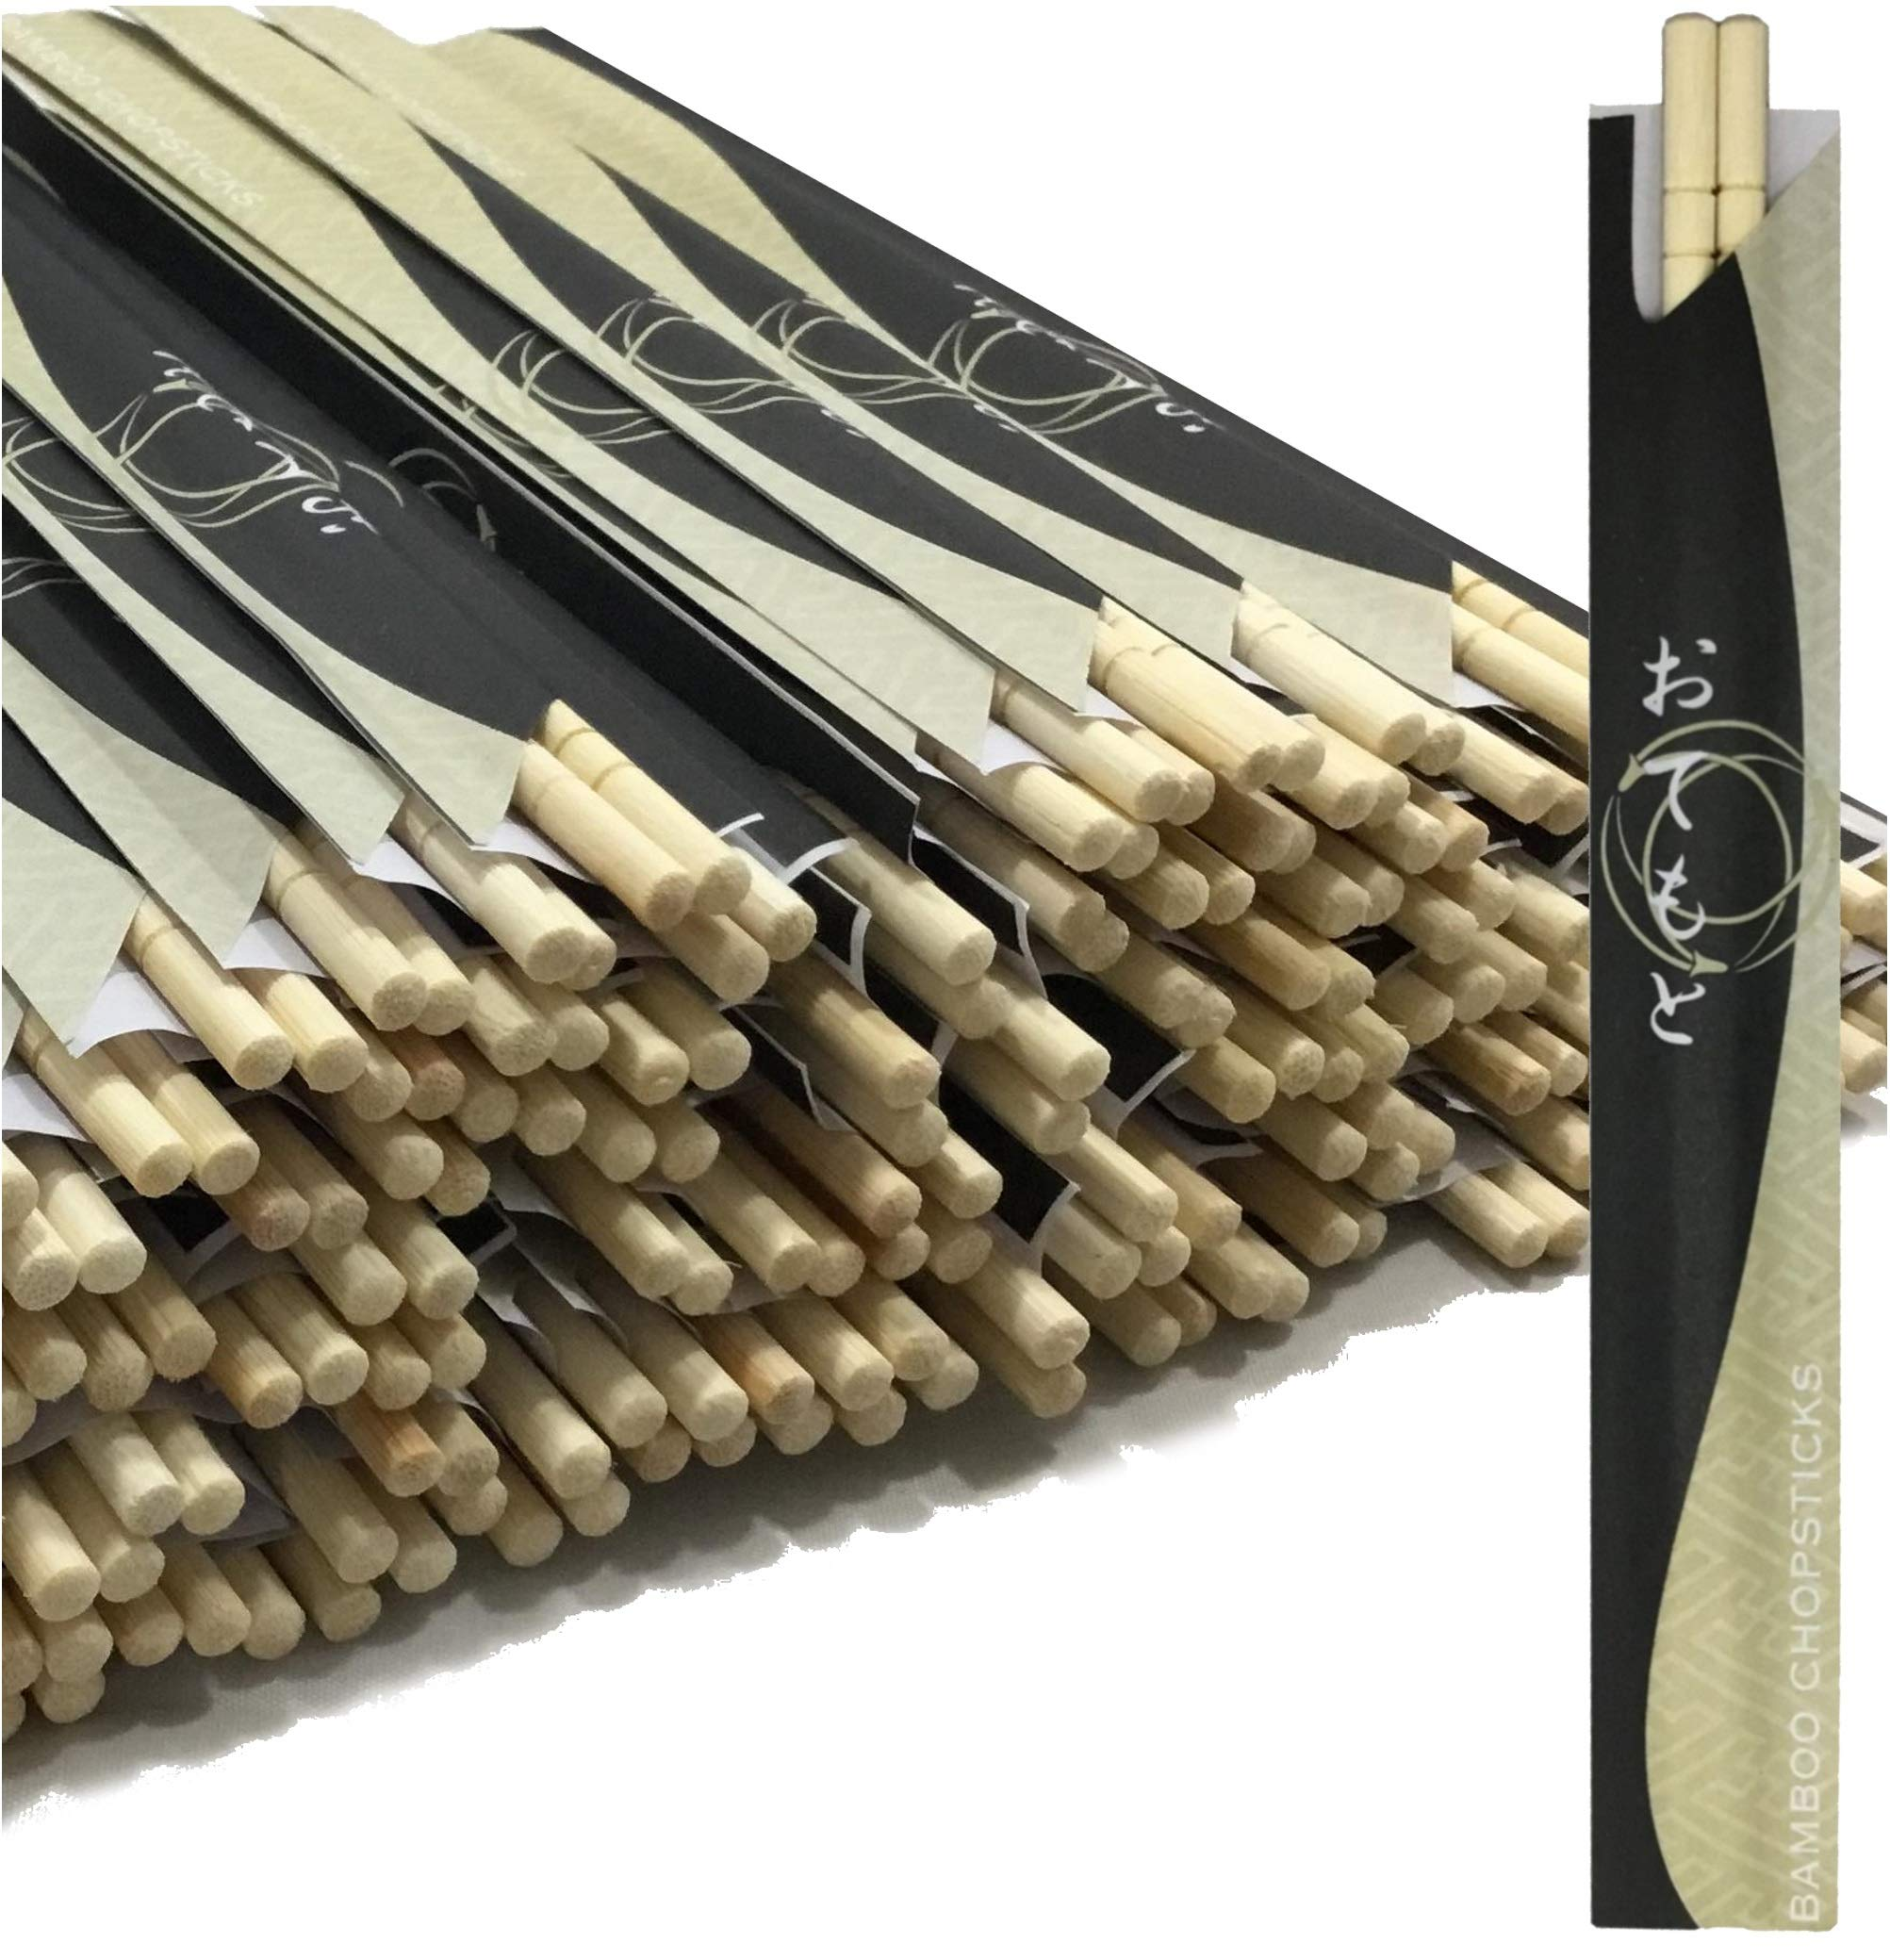 Albino Monkey 200 Round Separated Disposable Chopsticks | Best for Sushi | Bamboo Wooden Chinese Chop sticks - Bamboo Chopstick Bulk - Disposable Utensils Premium Quality - (100 Pairs)